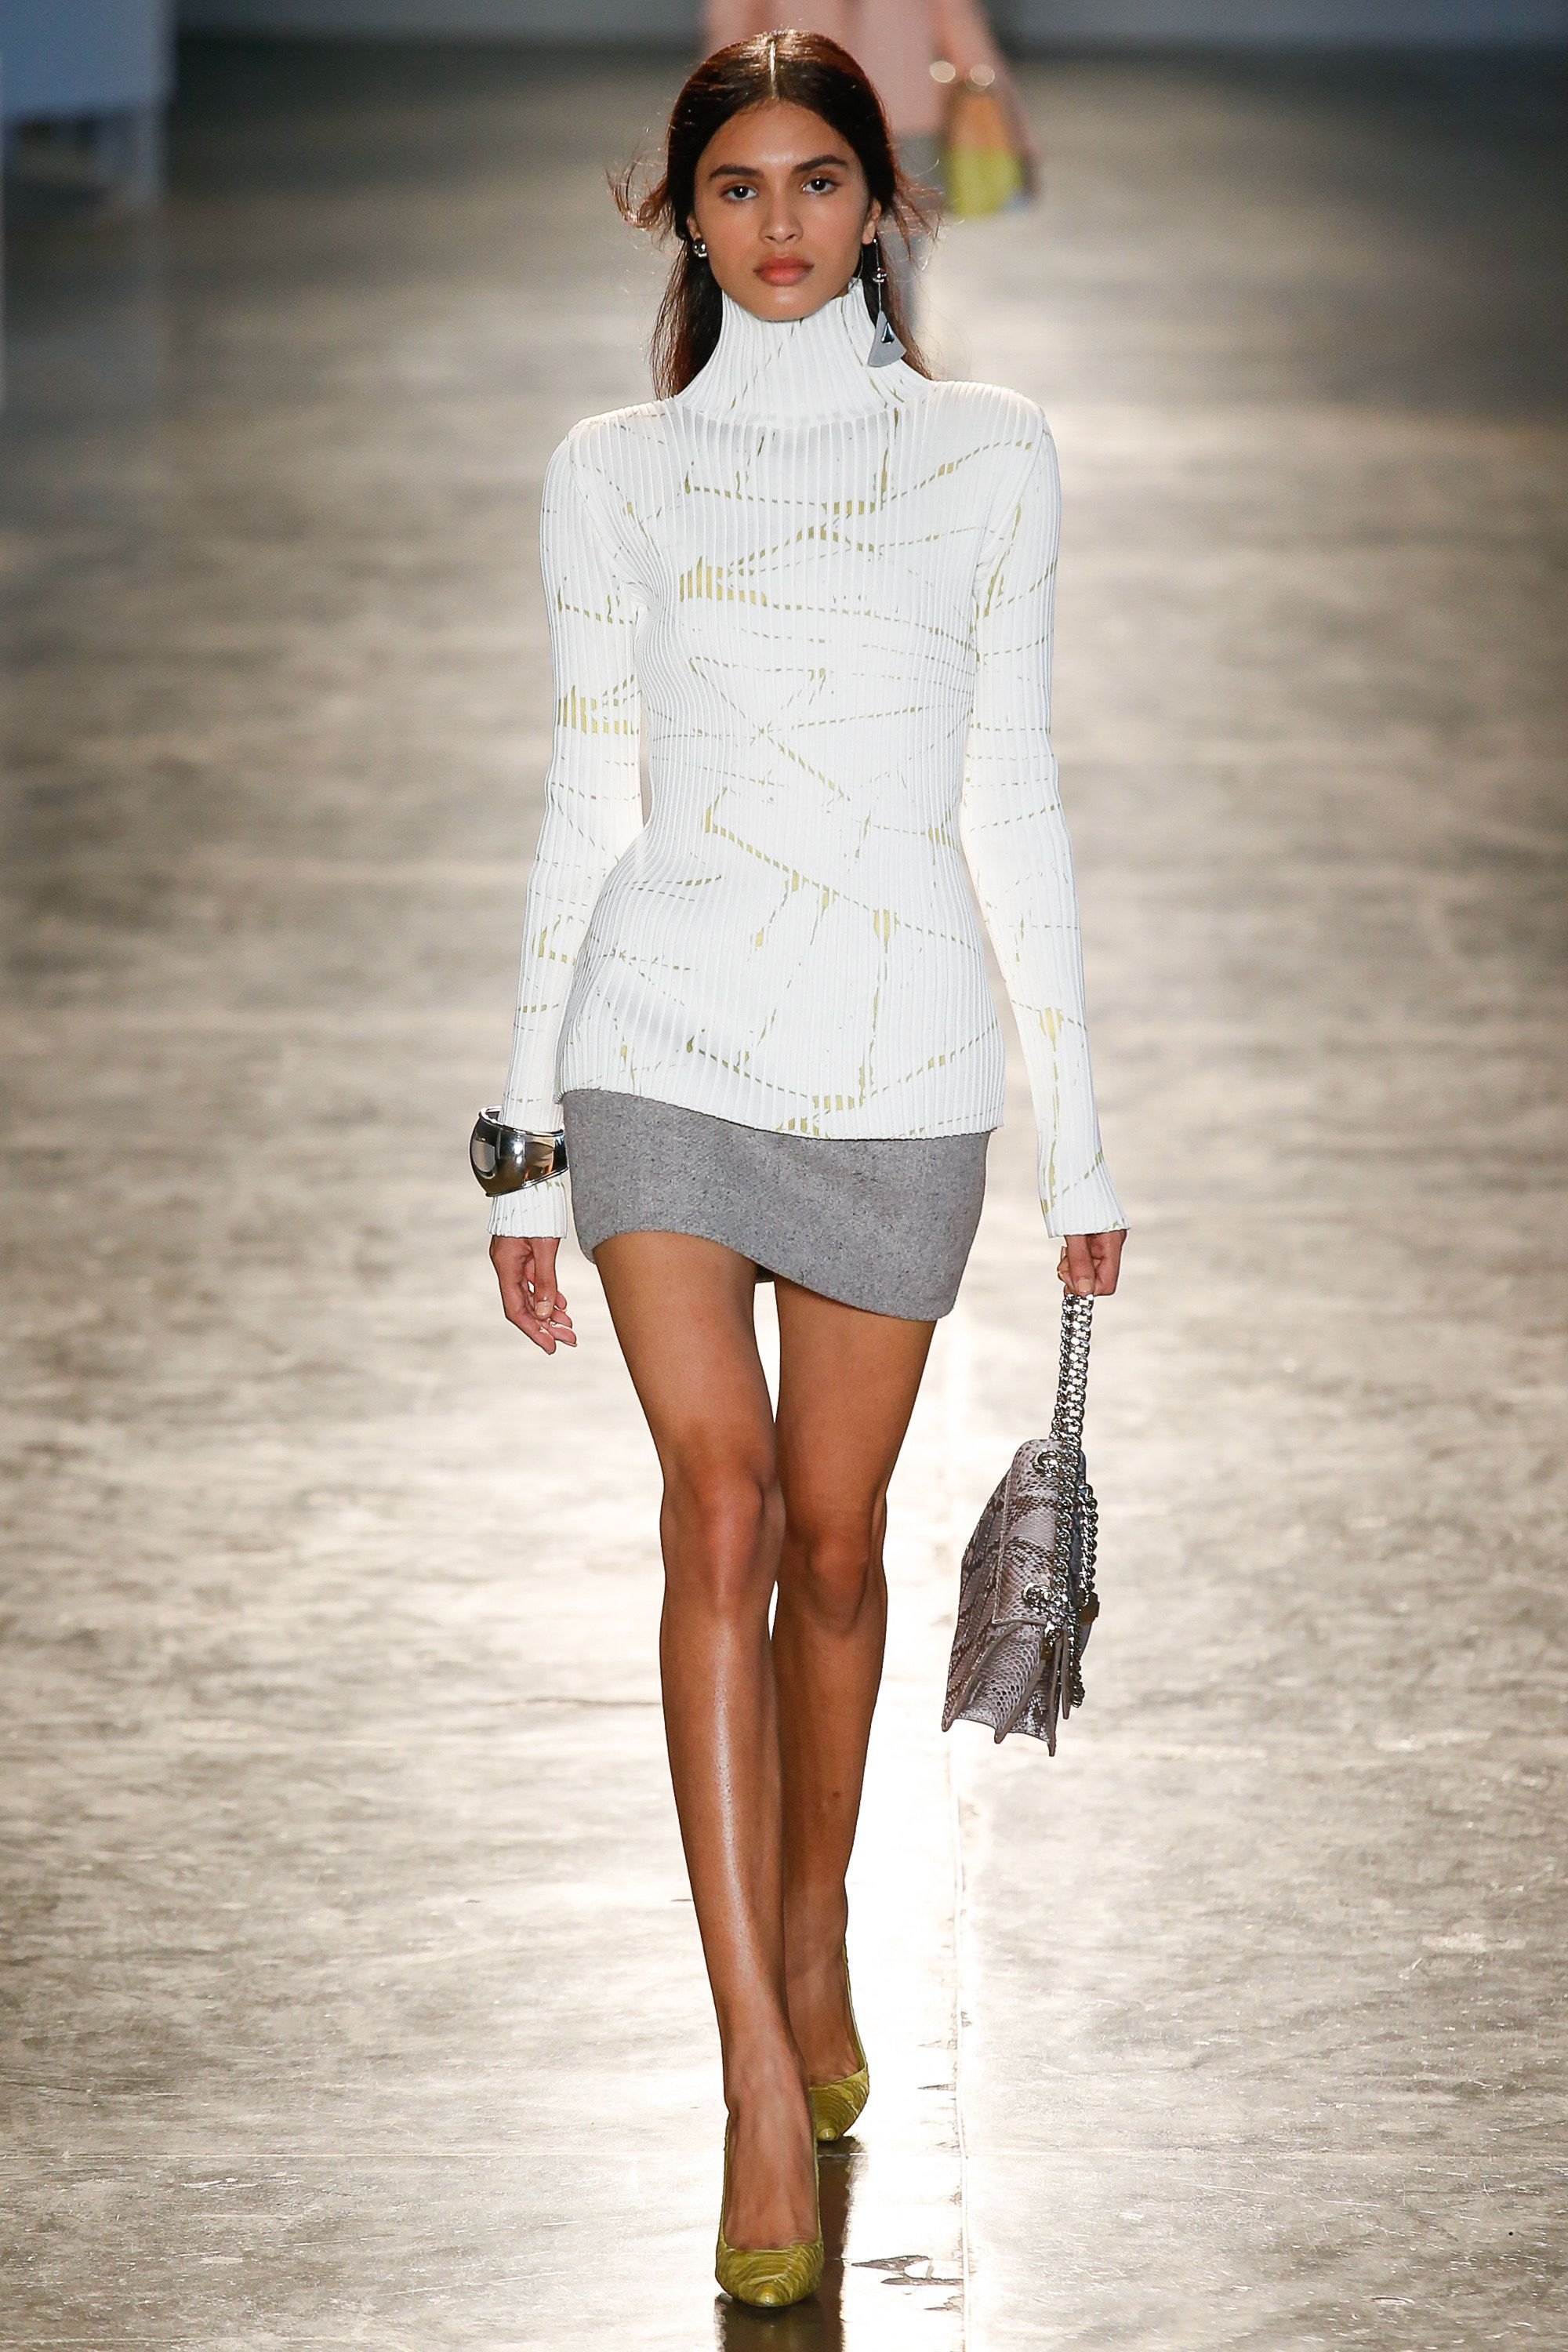 White Long Sleeve Turtleneck Sweater Top and Grey Skirt by Animale São  Paulo Fall 2016 Collection Photos - Vogue a6d5bce3b